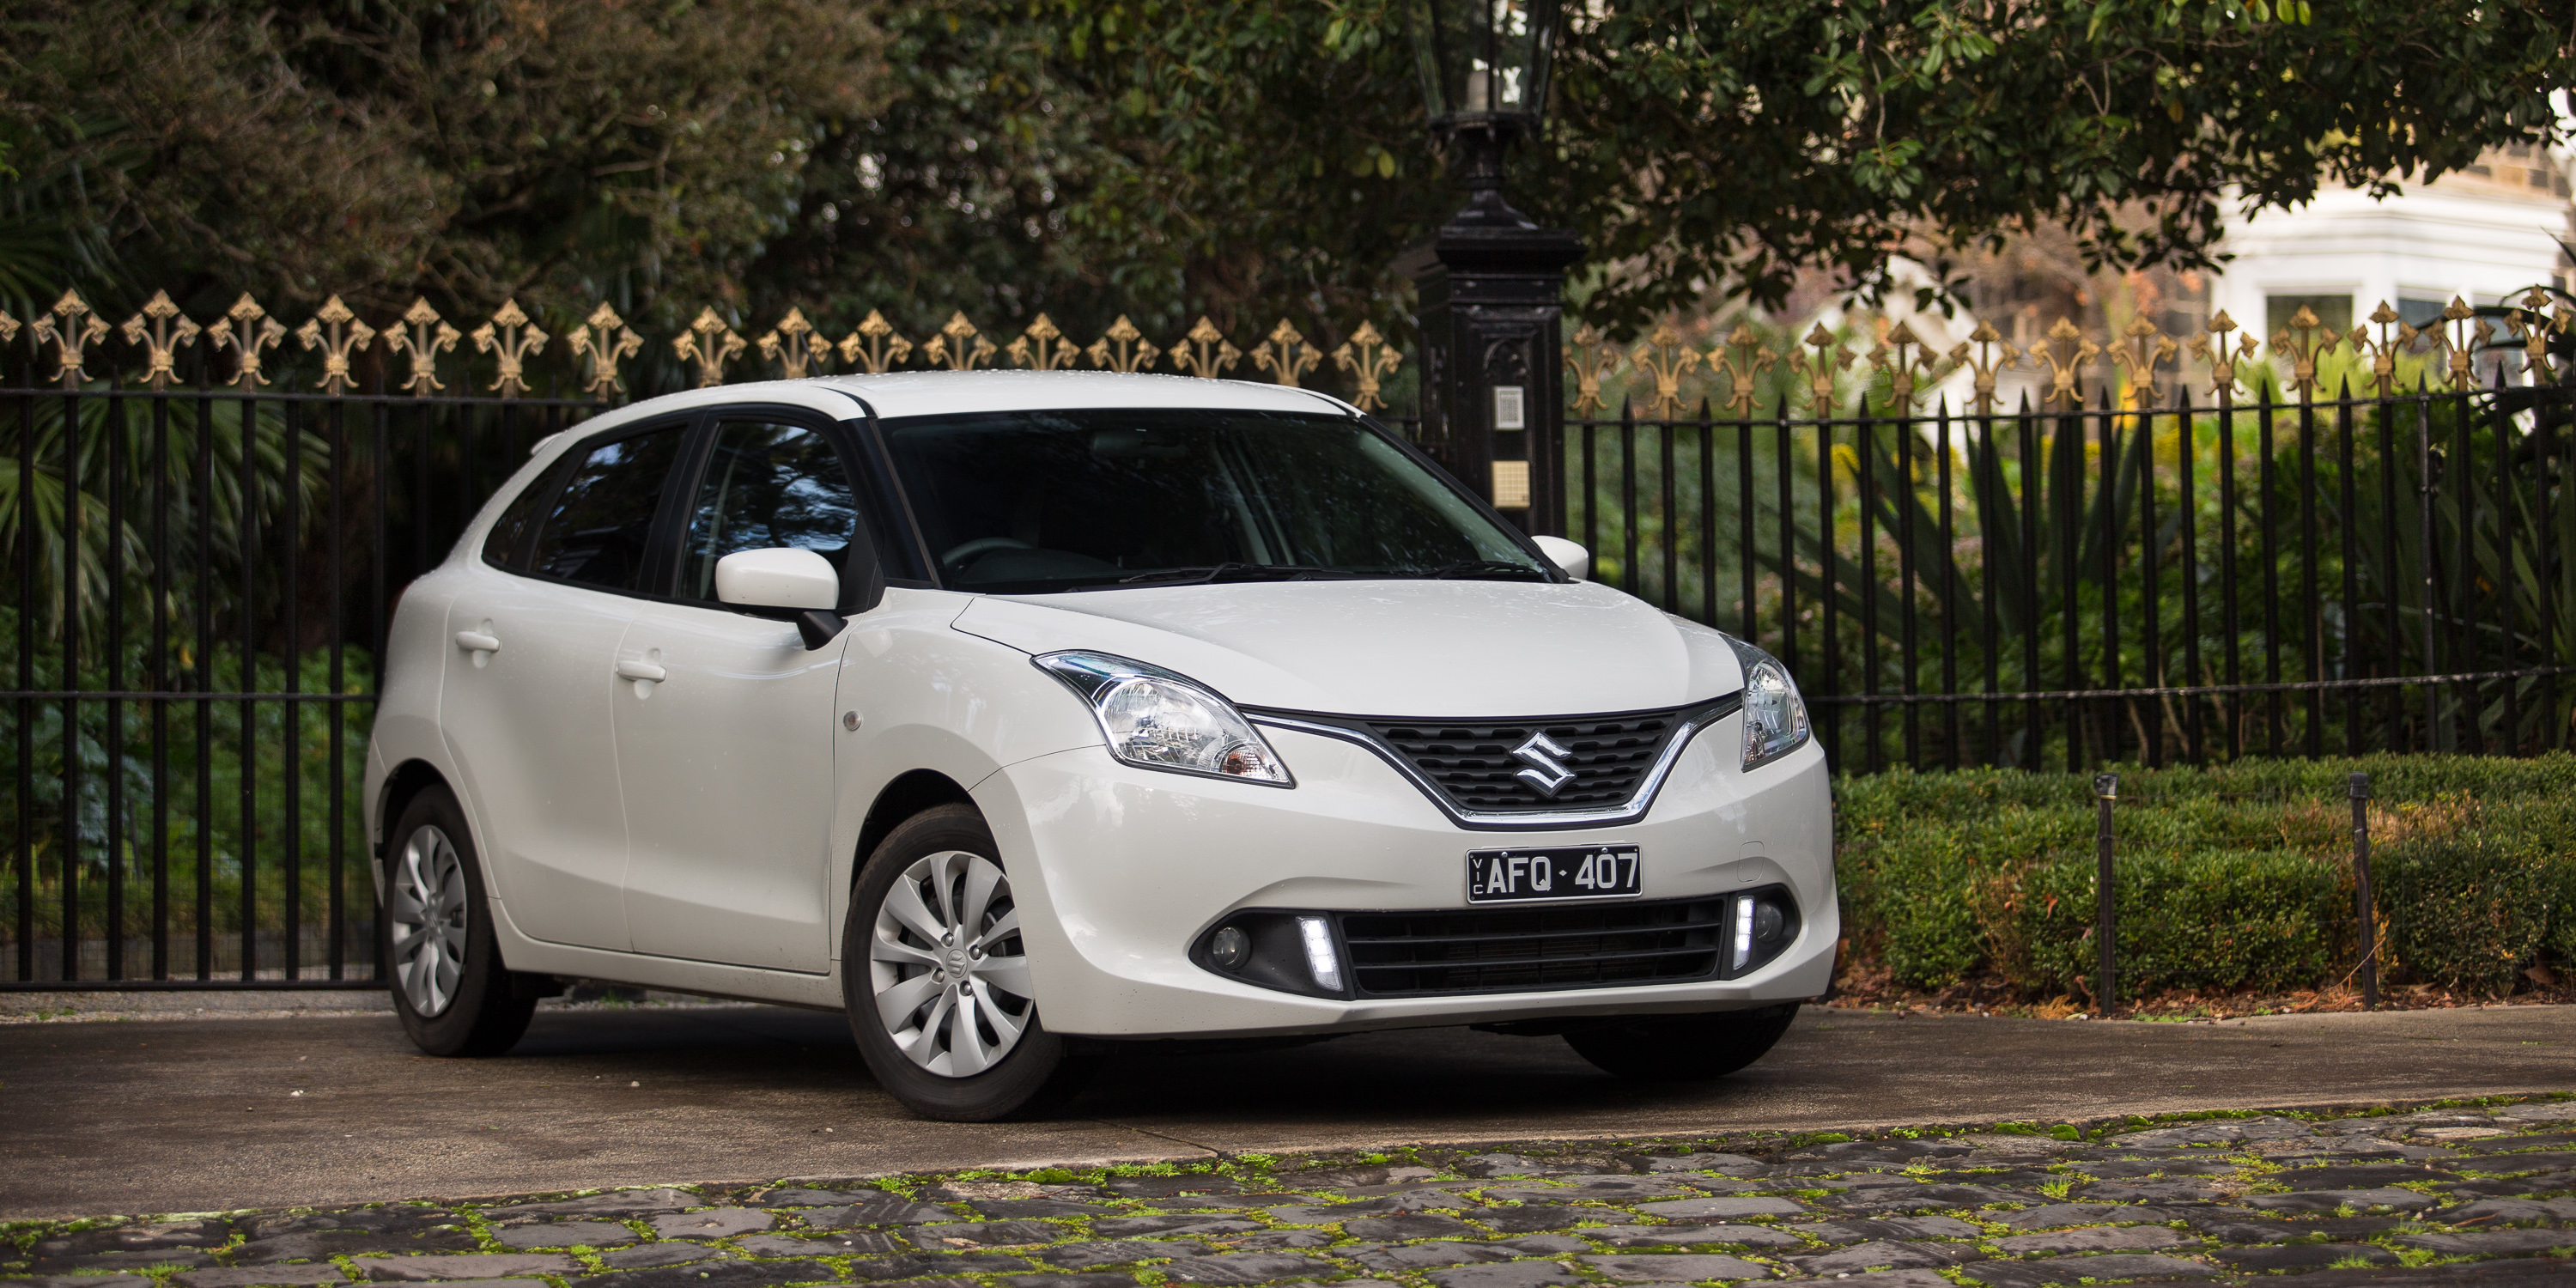 Image Result For Toyota Baleno